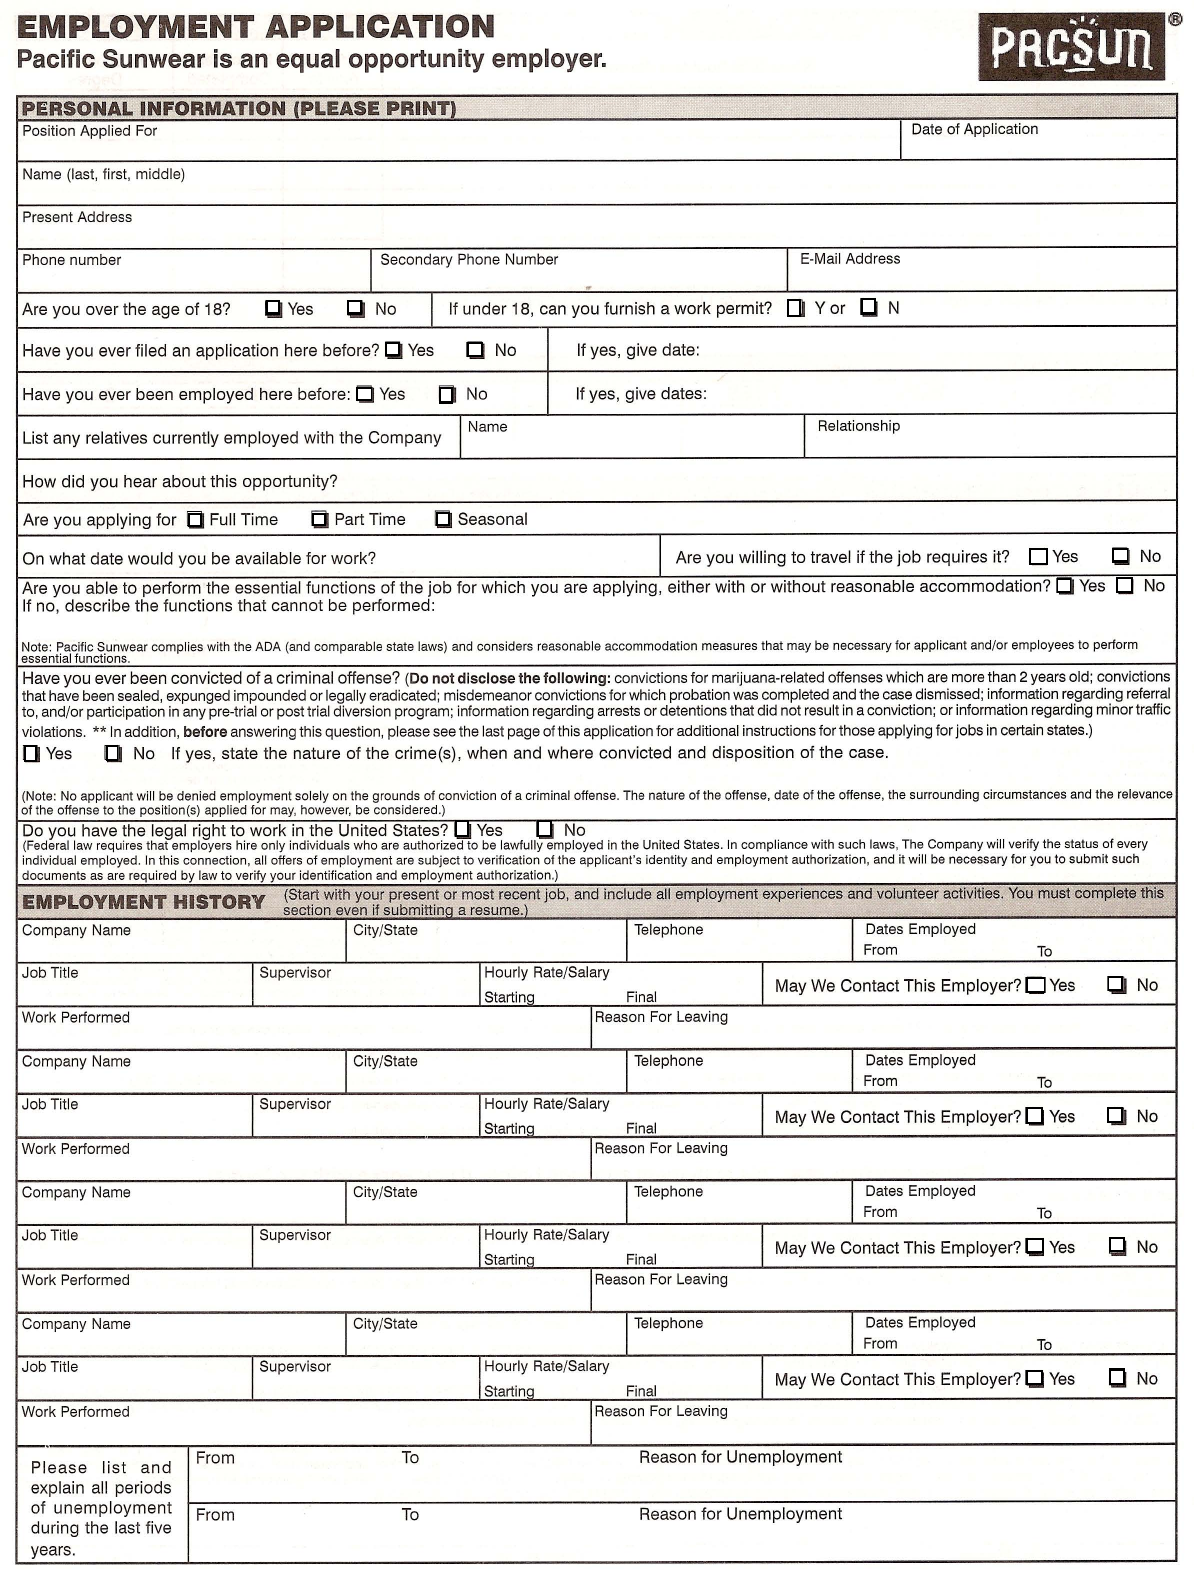 download pacific sunwear pacsun job application form careers